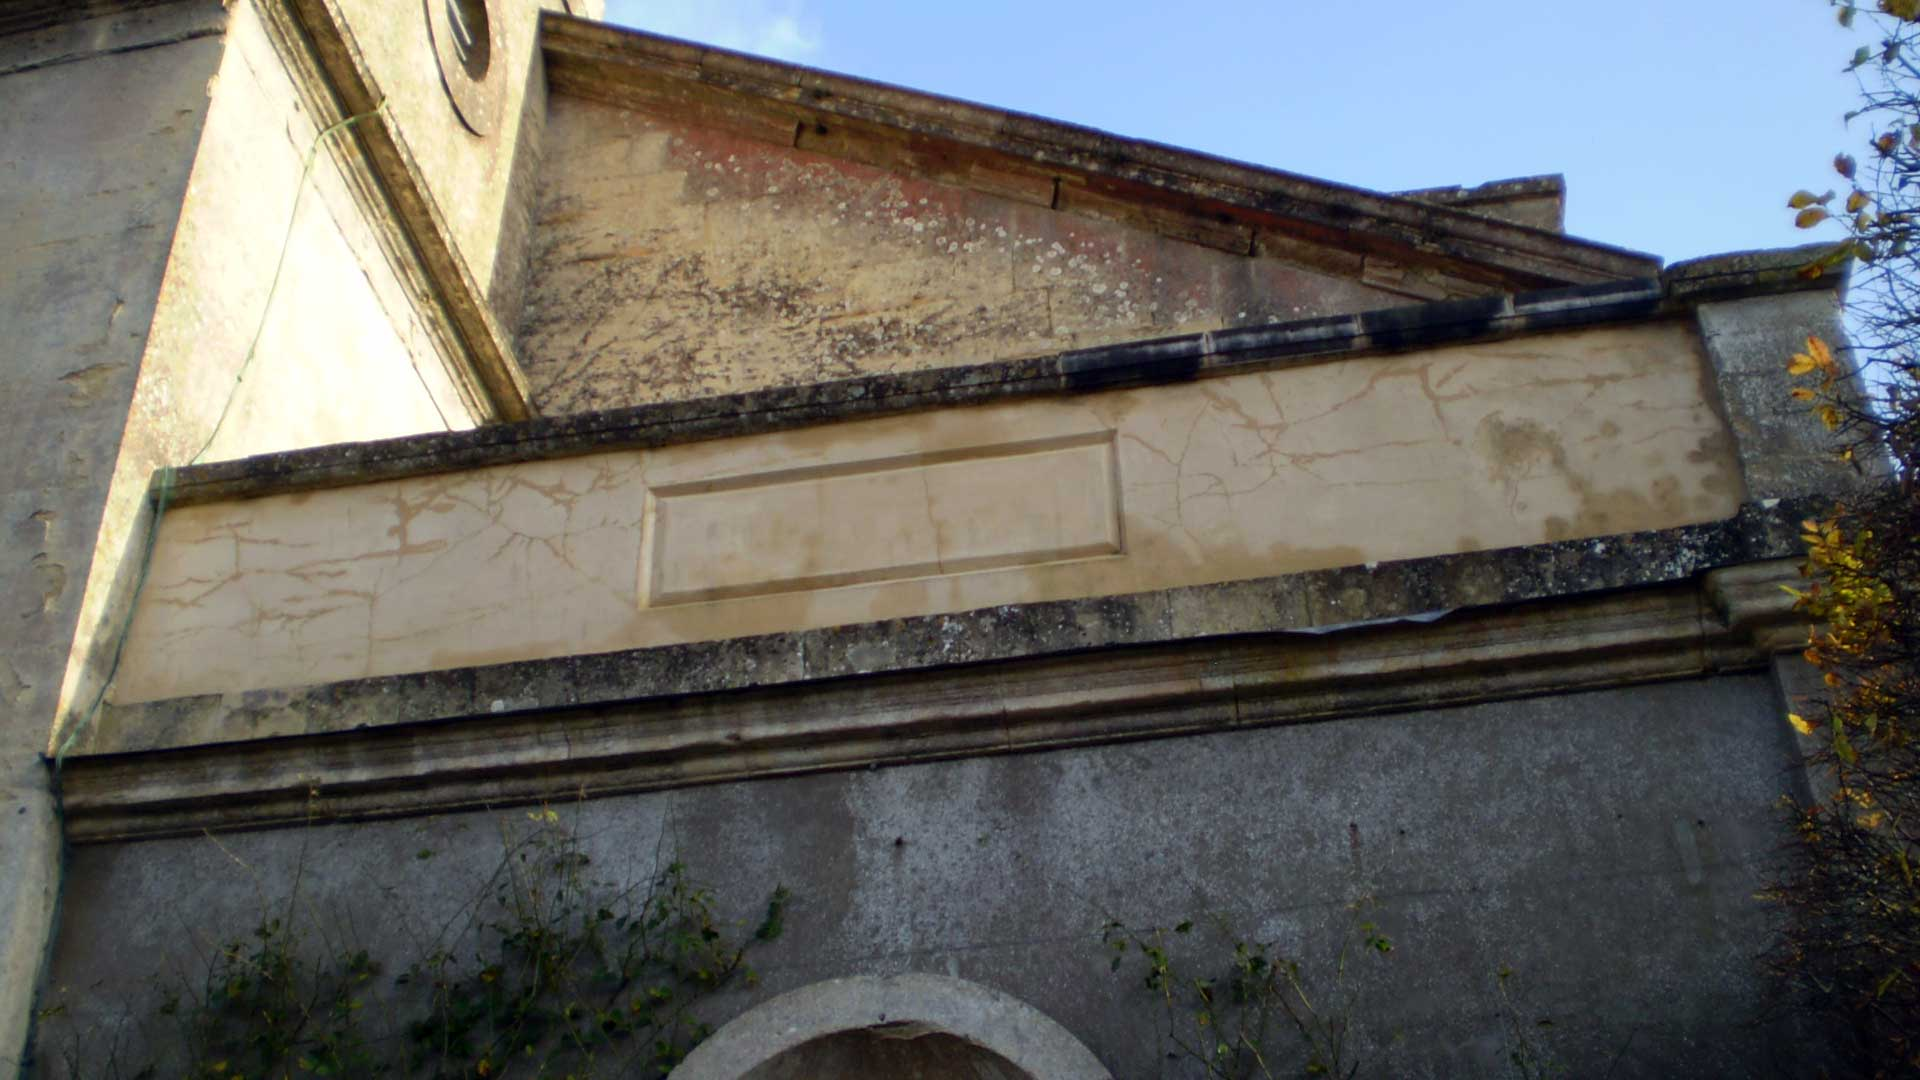 Damaged Stonework on the Exterior of the Outer Porch